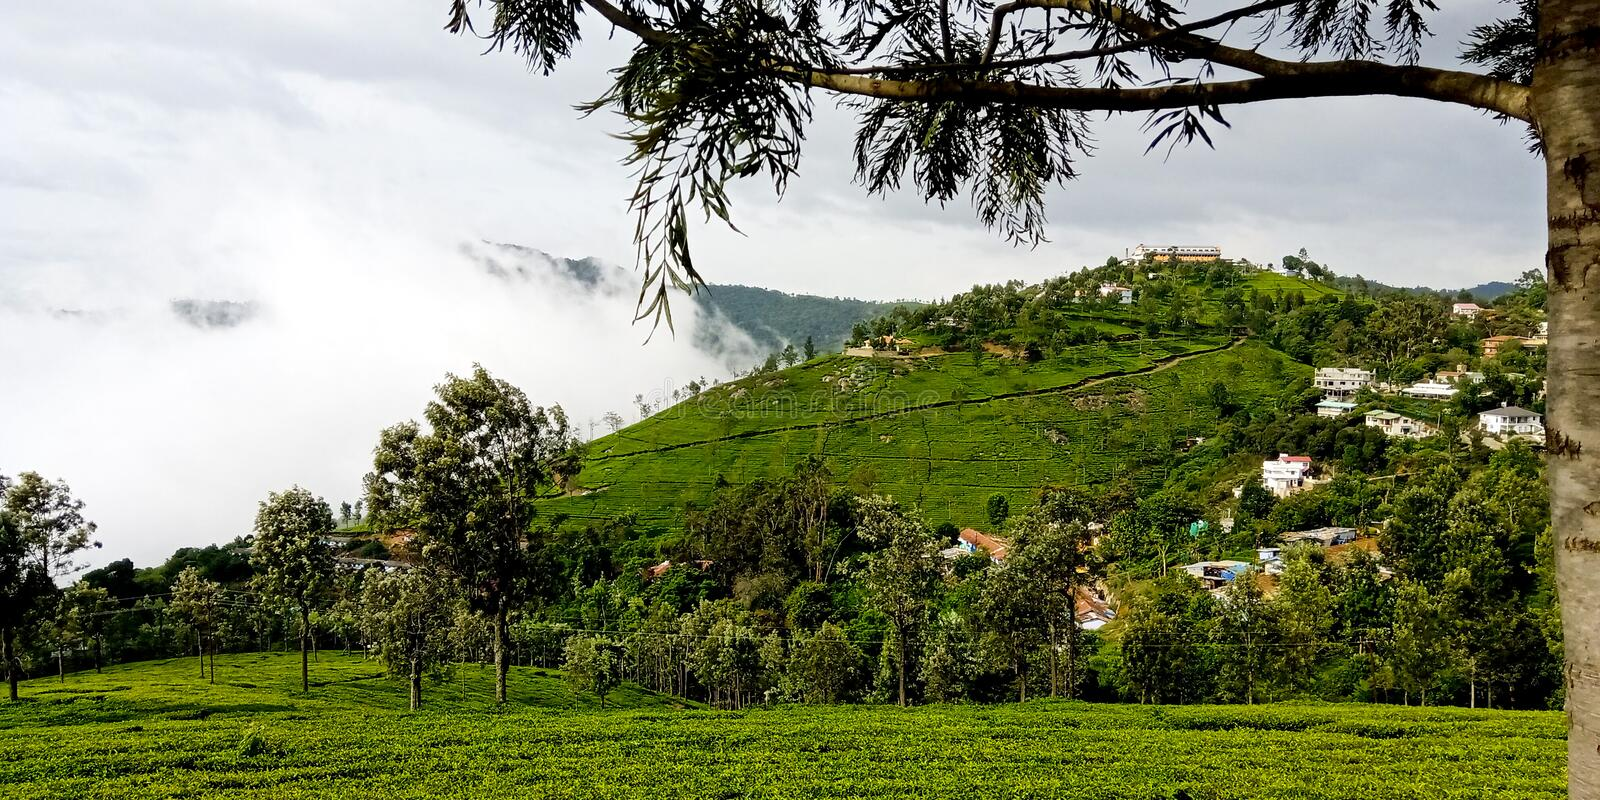 Coonoor,Tamil Nadu/India - July 2019:Misty mountains with tea plantation stock image